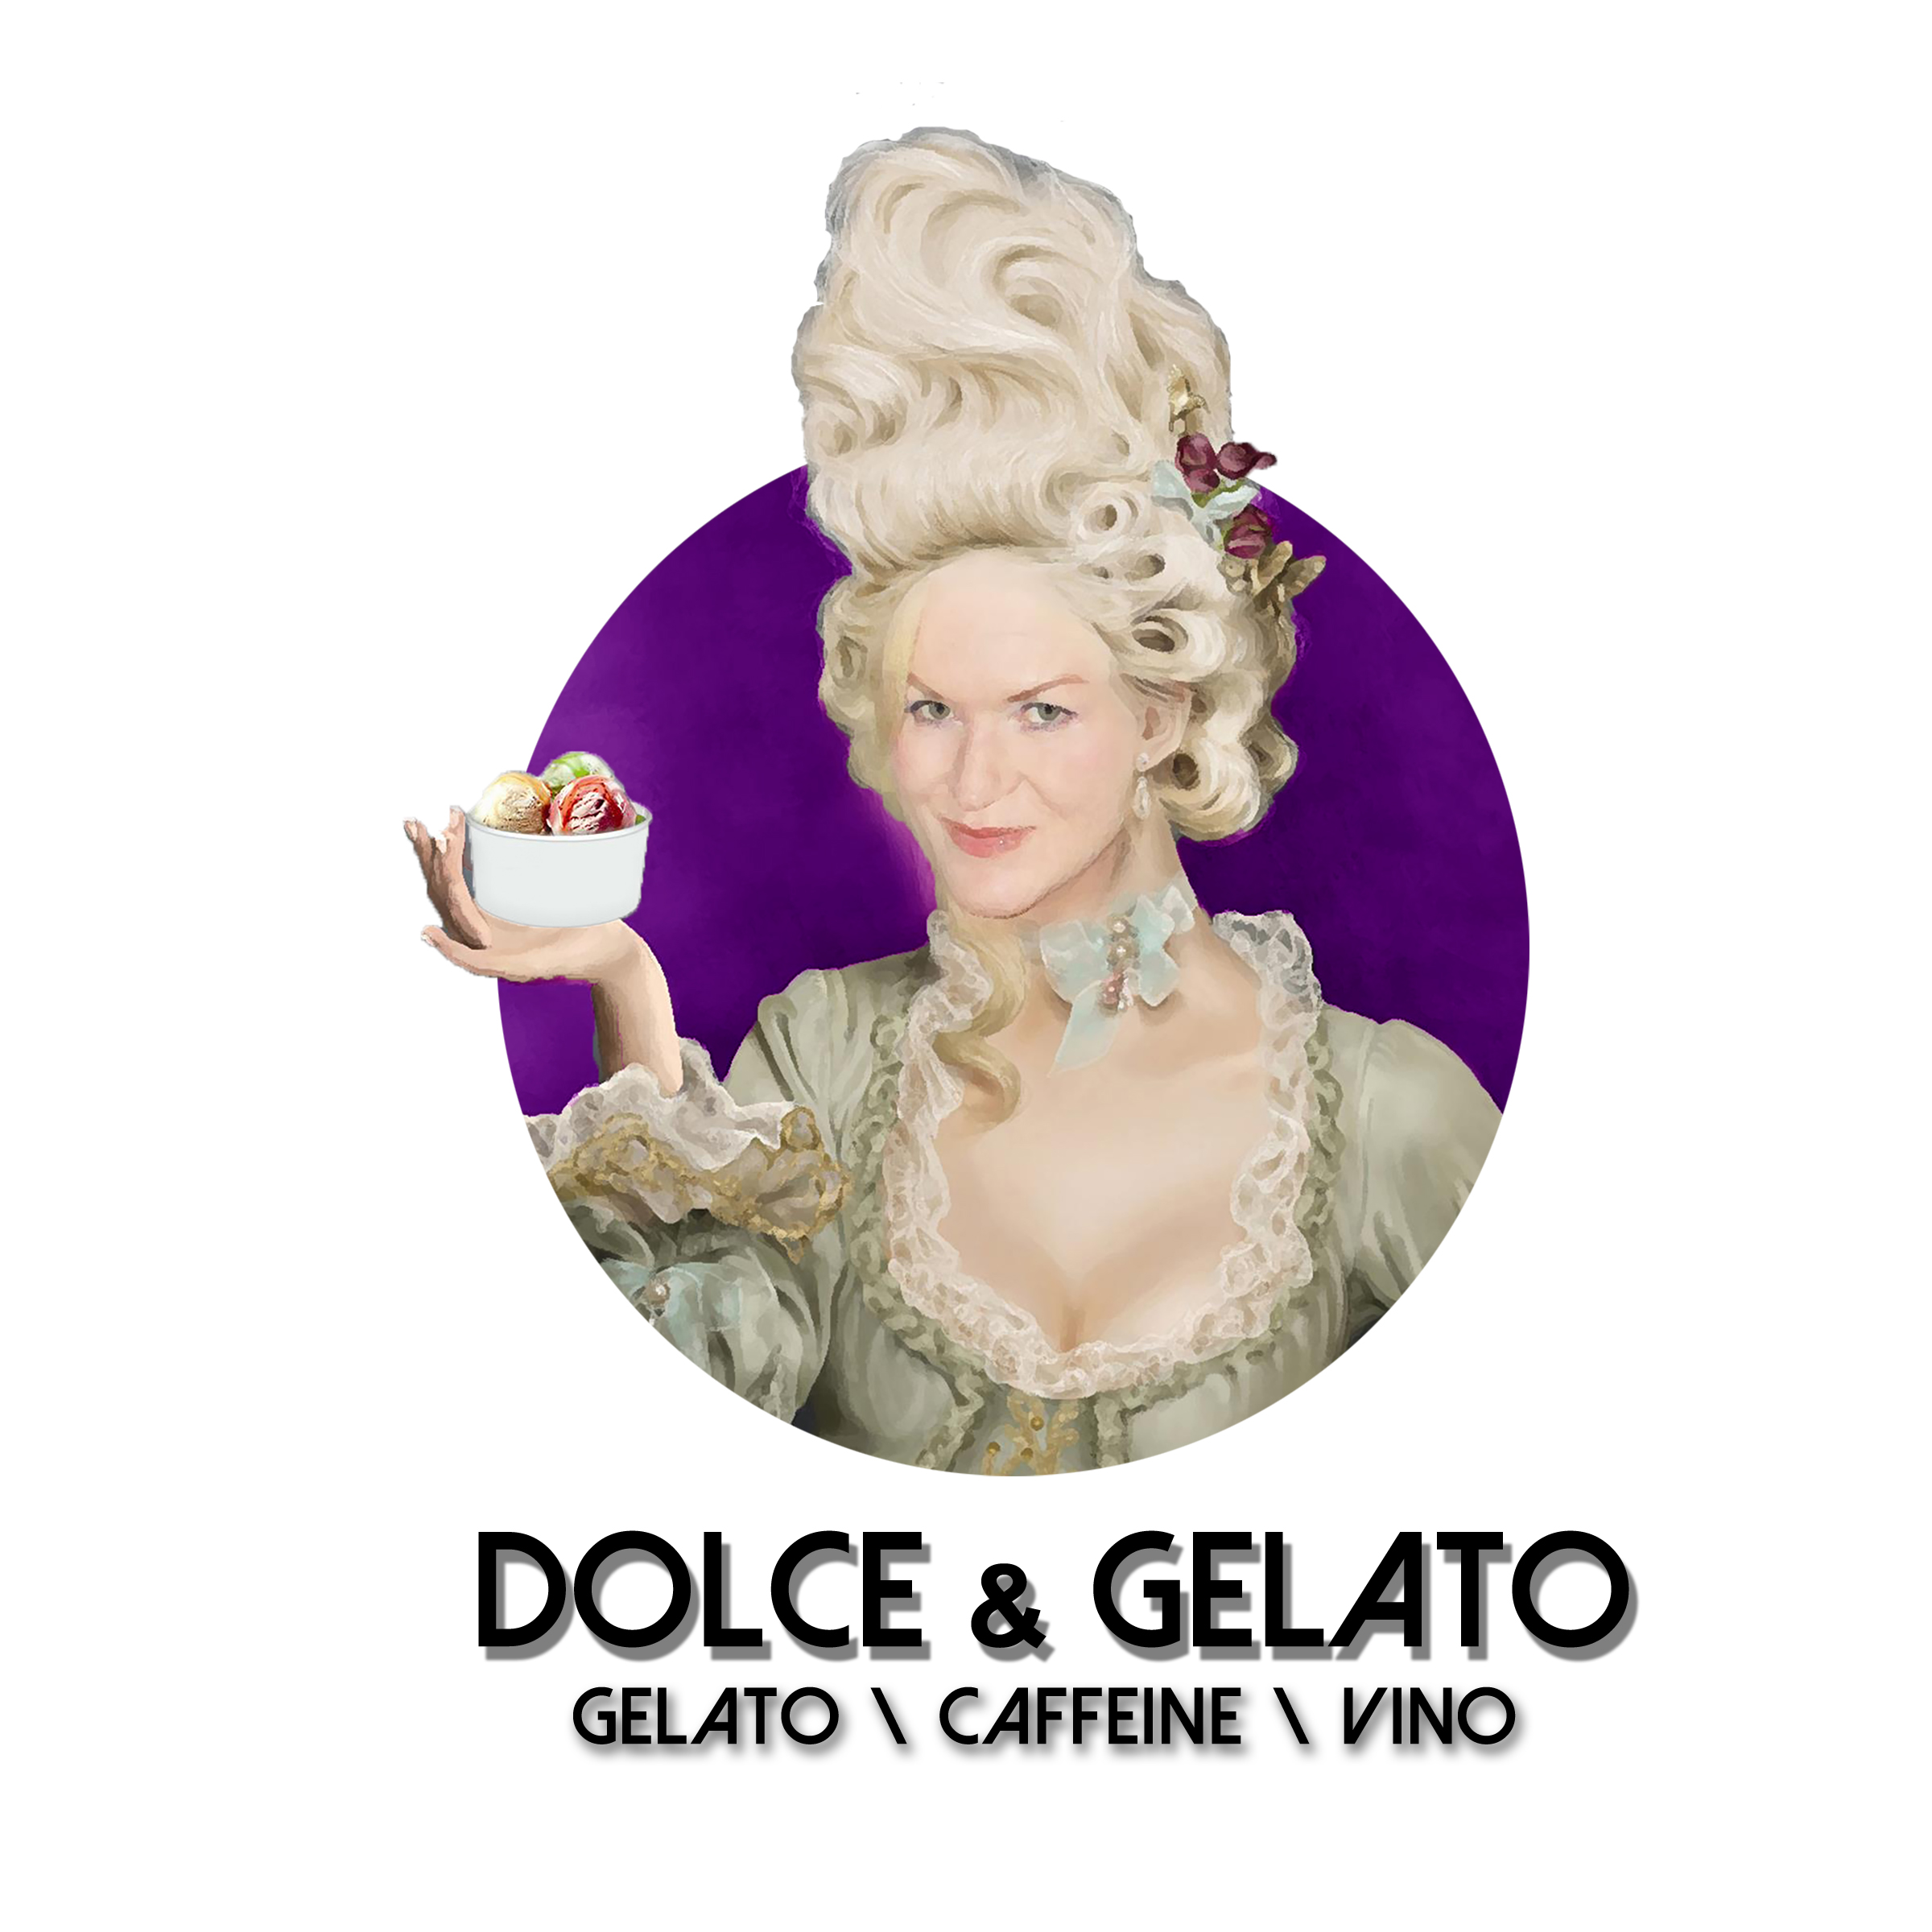 dolce and gelato logo